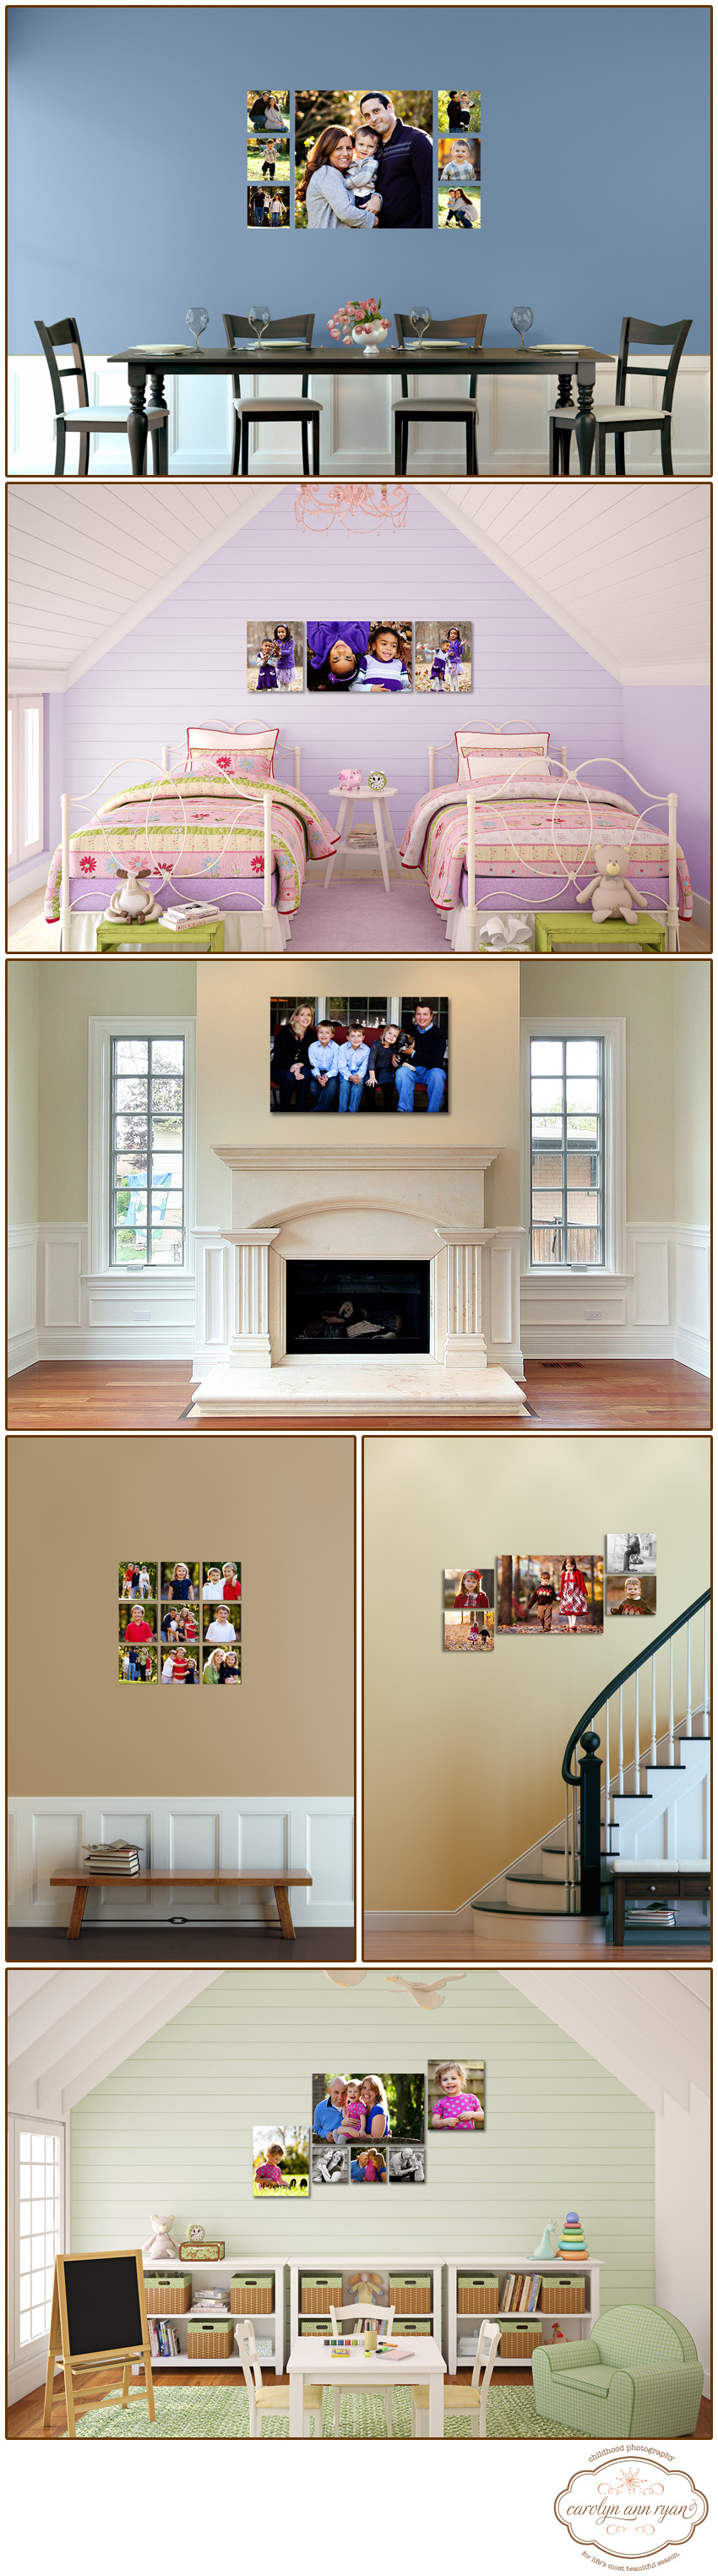 Charlotte, North Carolina Family Photographer demonstrates ways to display family photographs in your home